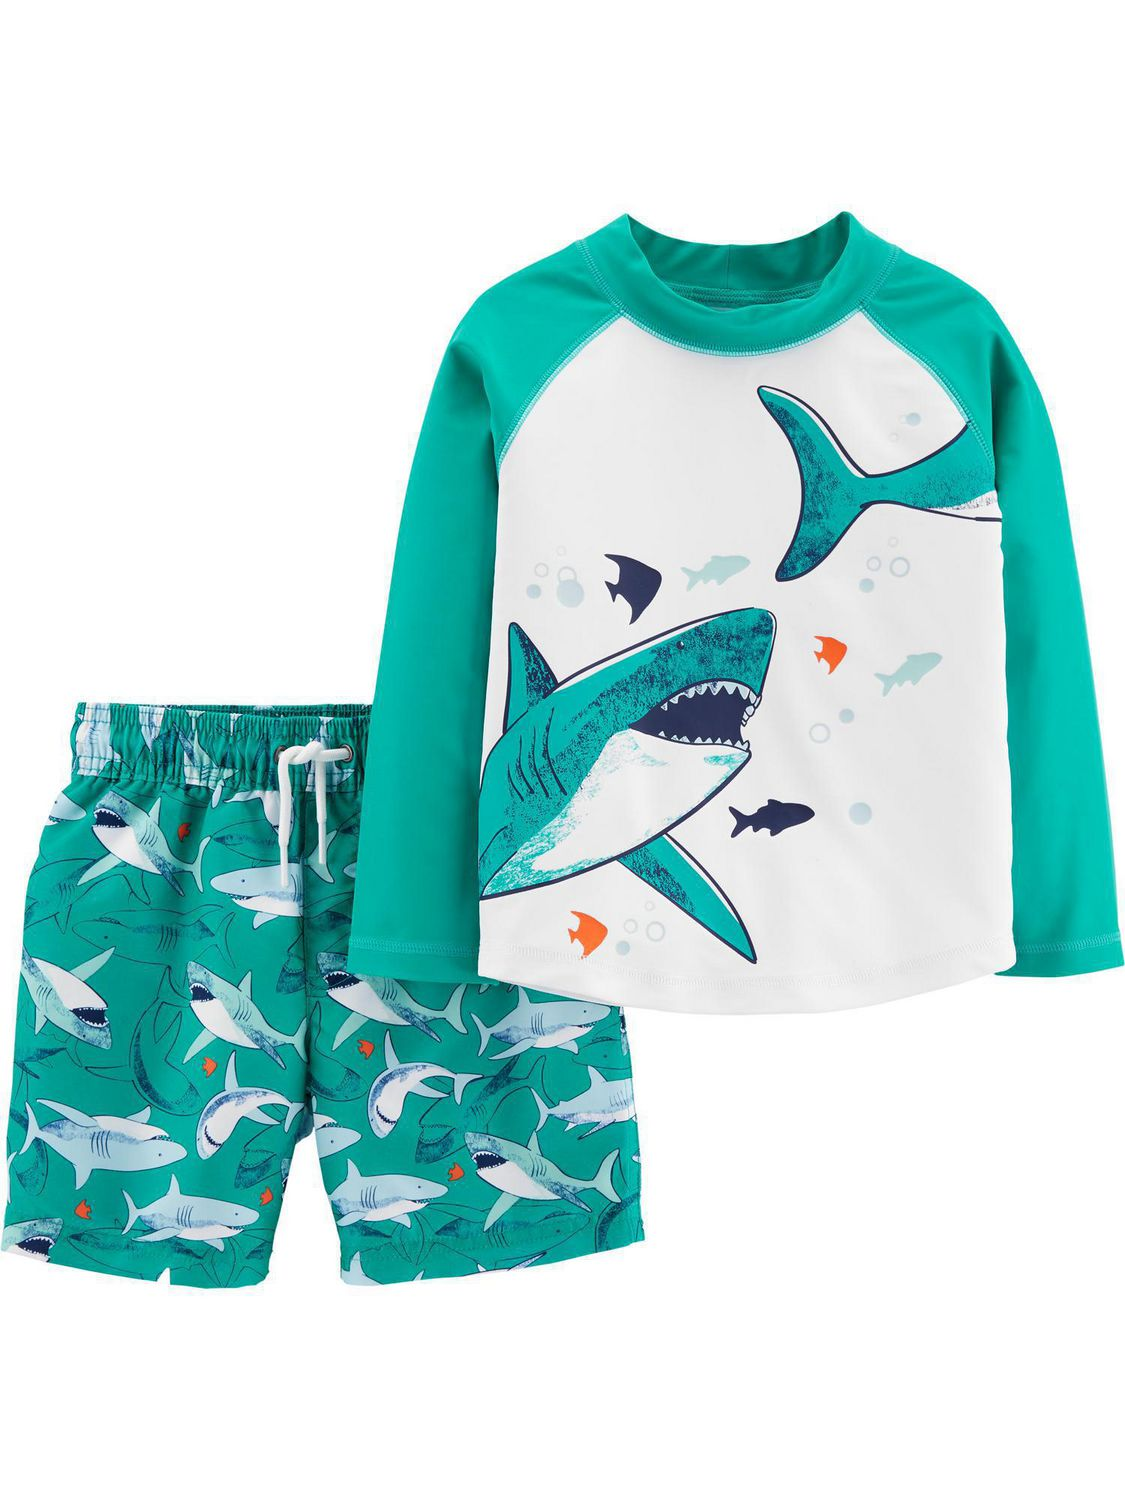 Carters Toddler Boys Rashguard Set Carter/'s